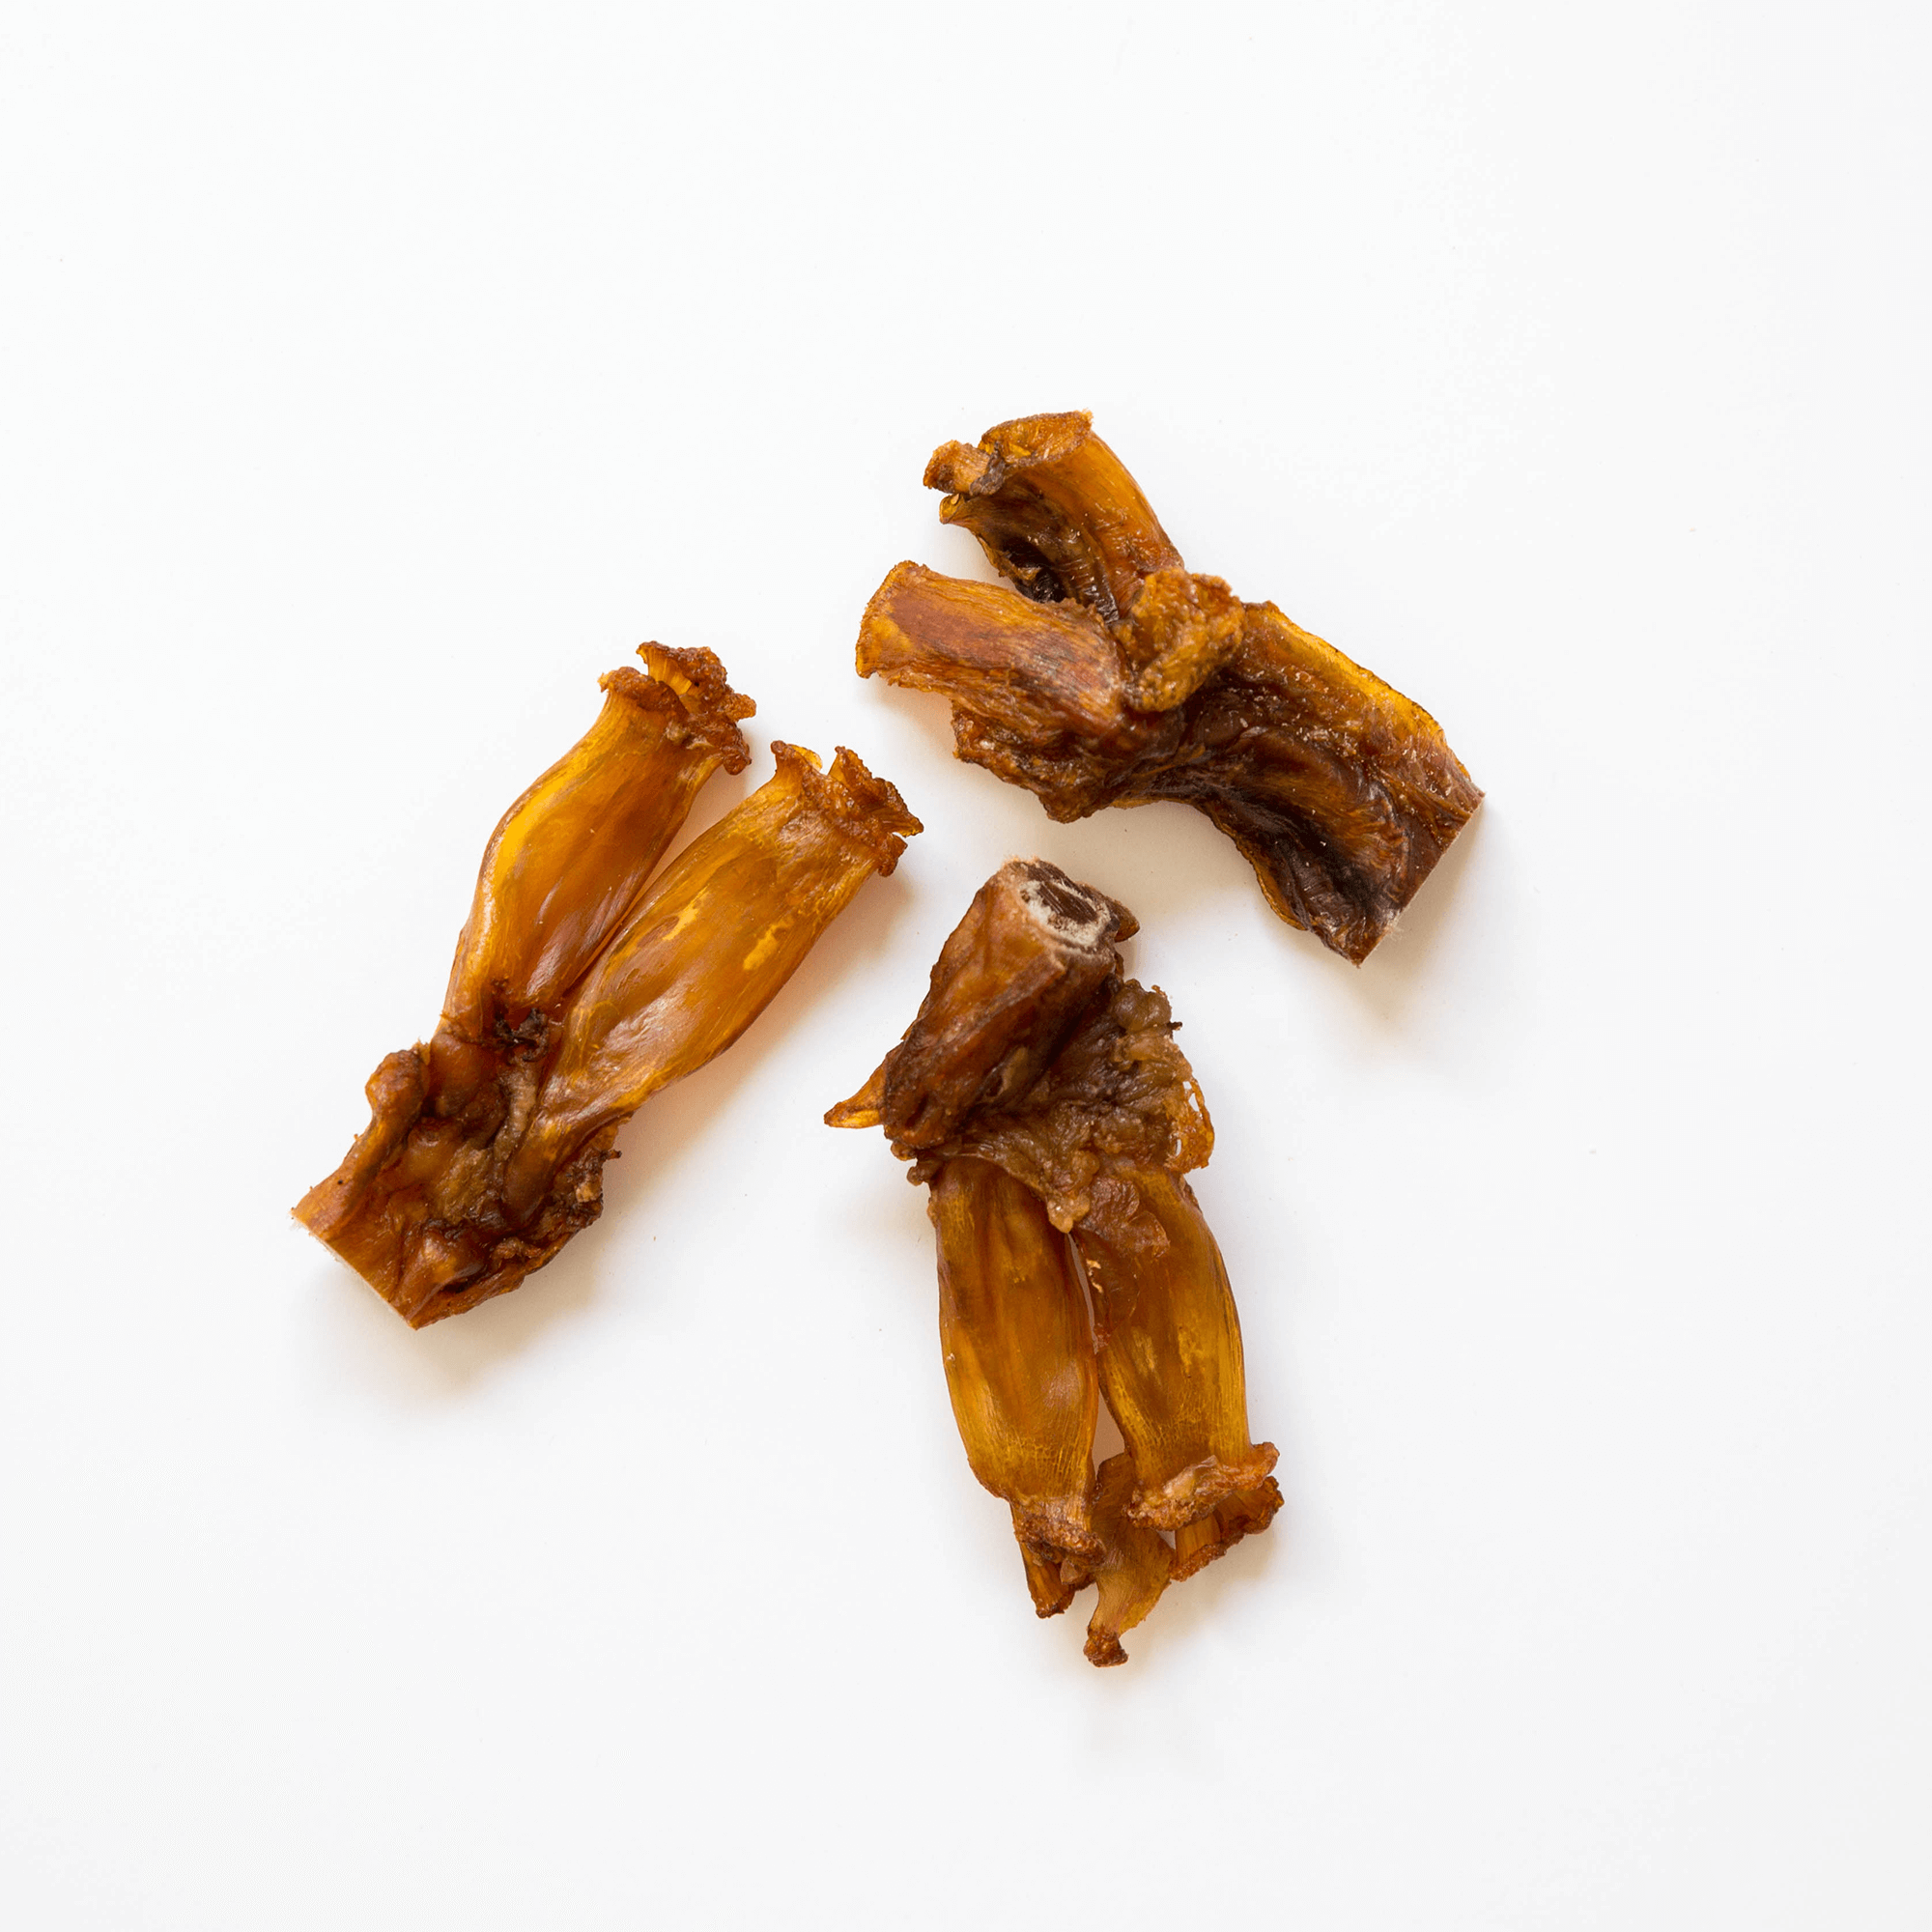 Beef-Tendons on white background | Pupford